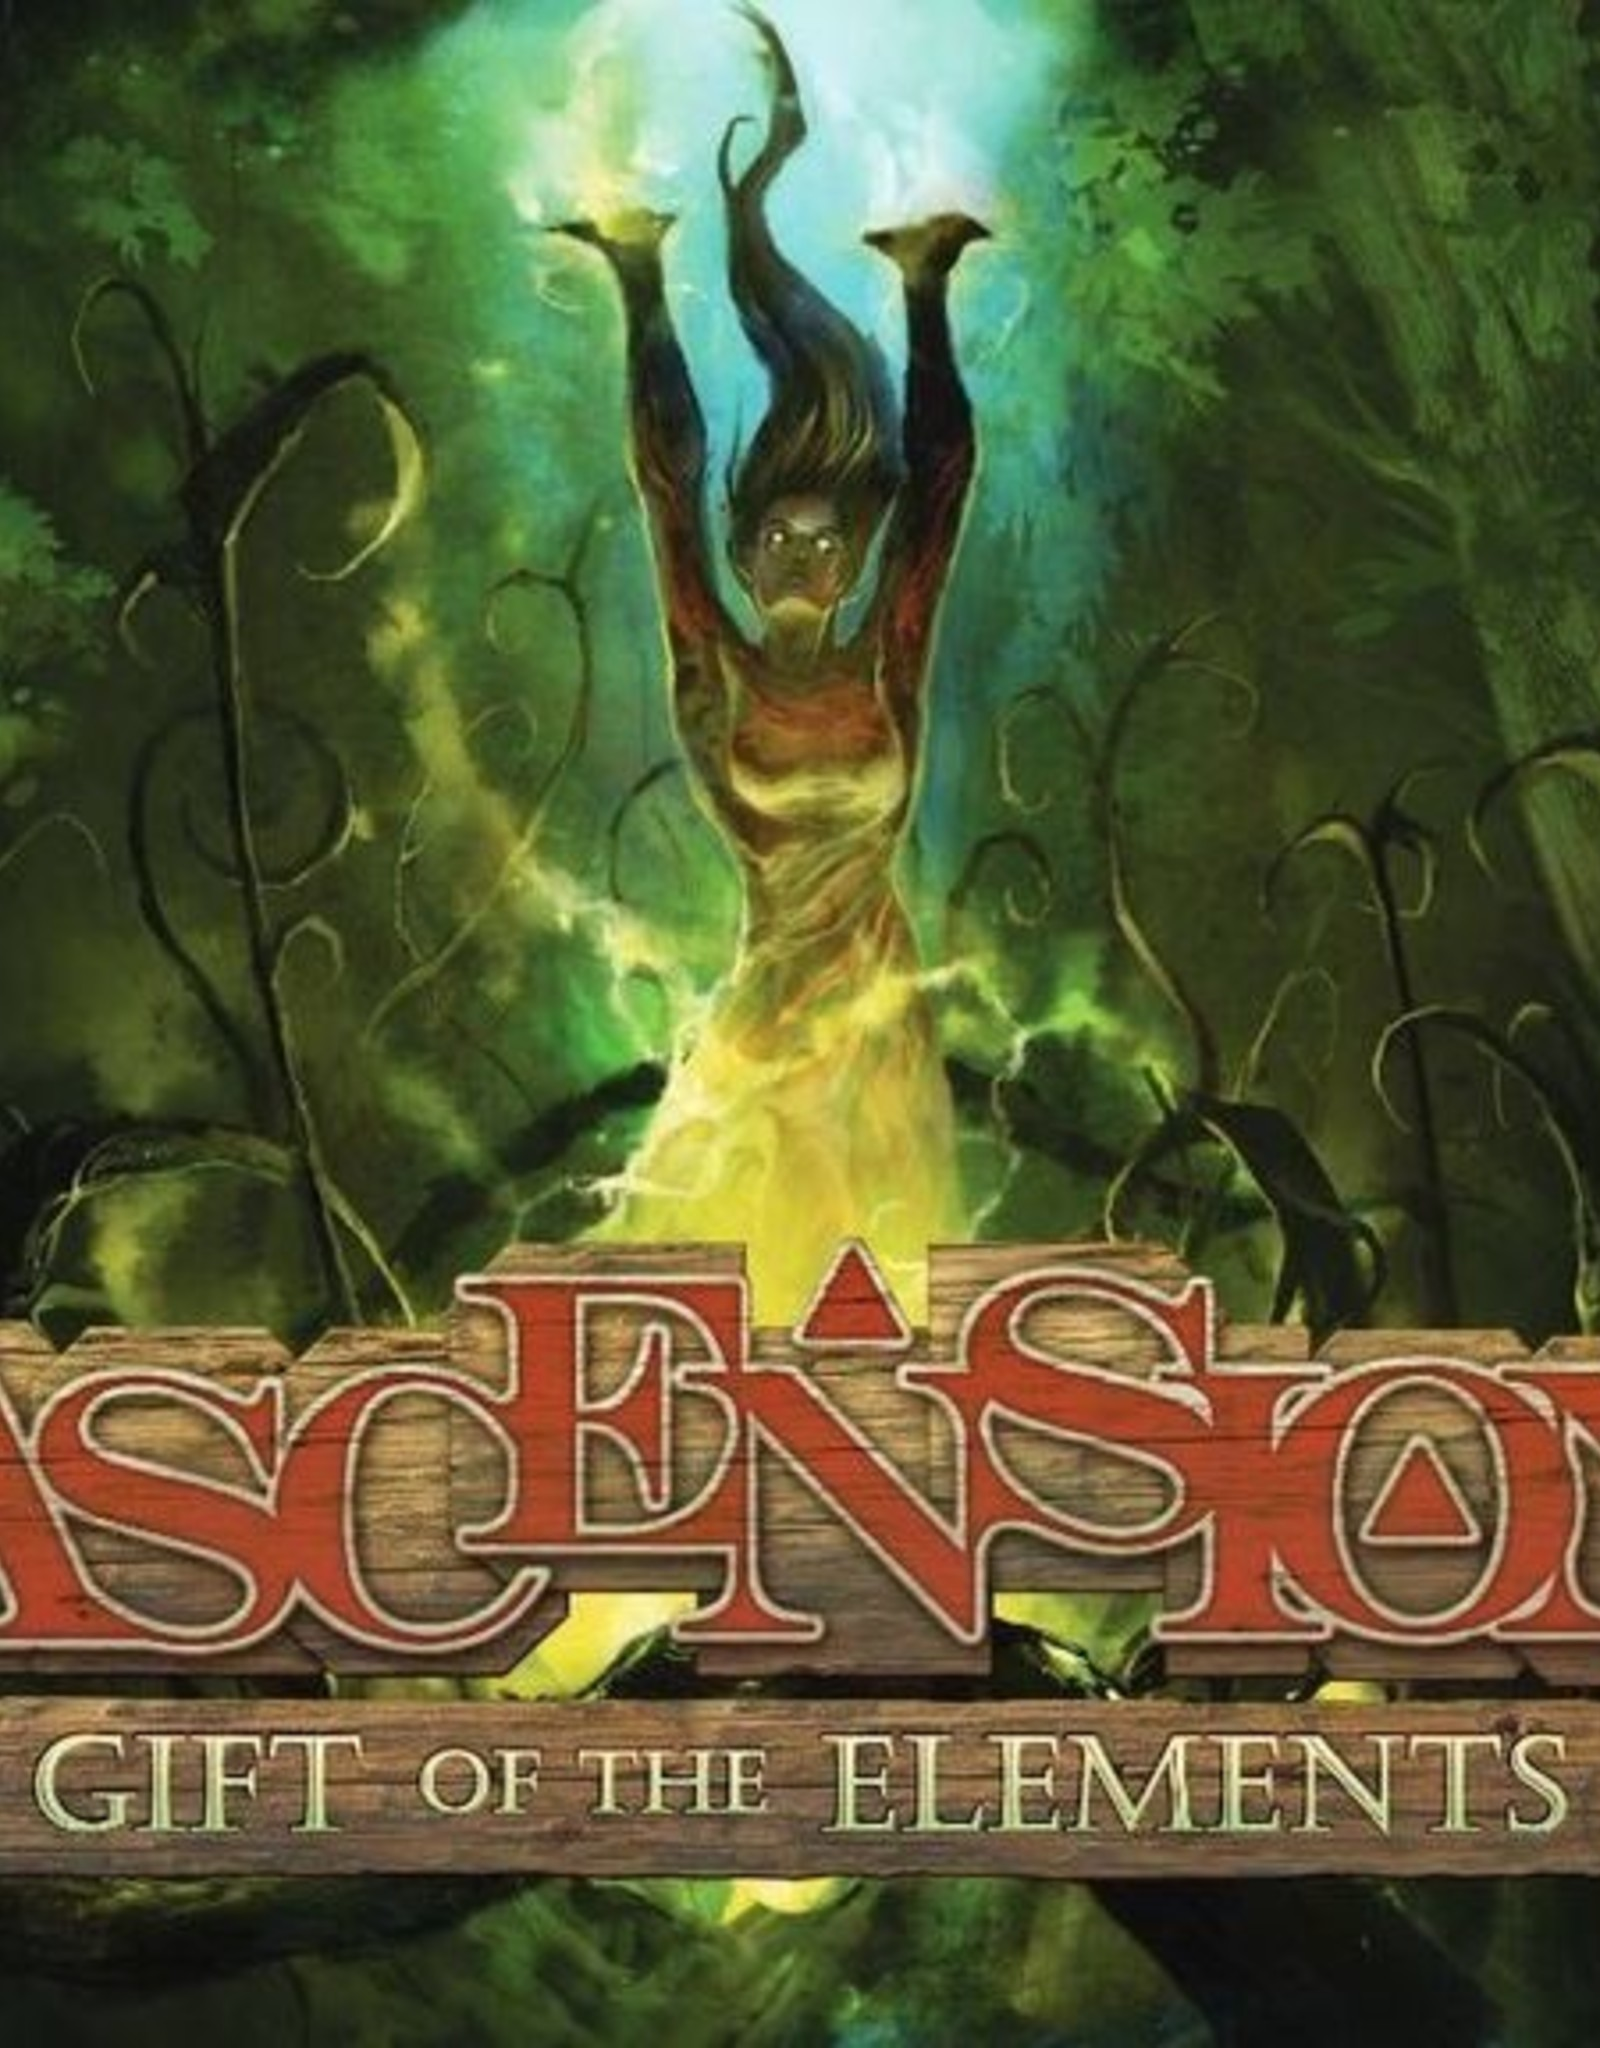 Stone Blade Entertainment Ascension Gift of the Elements